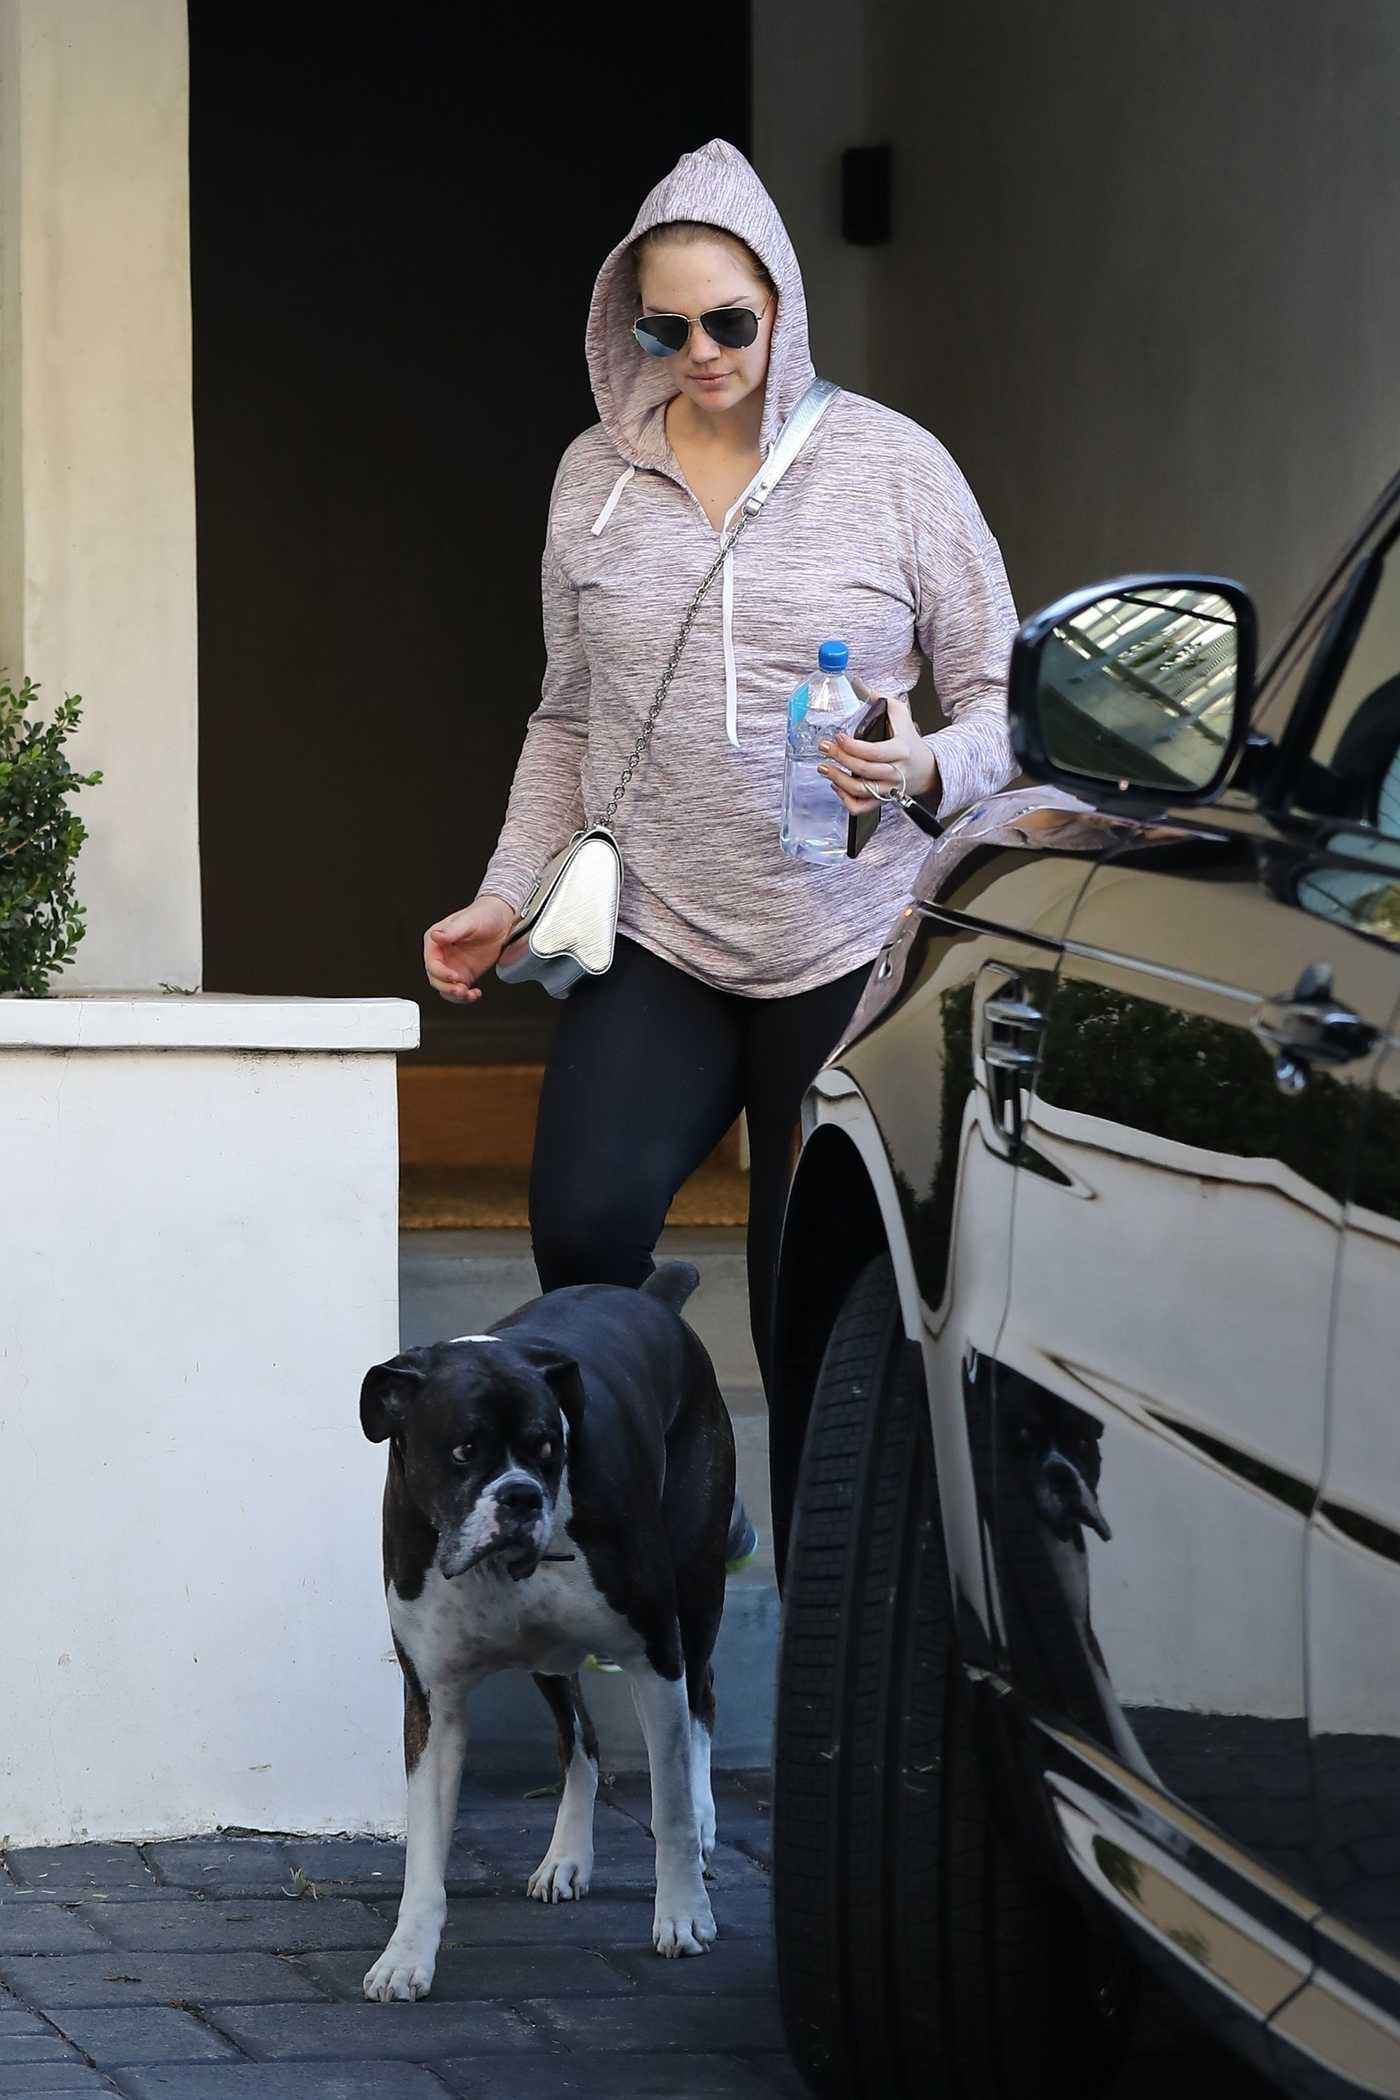 Kate Upton in a Black Leggings Leaves Her House with Her Dog in Beverly Hills 01/03/2018